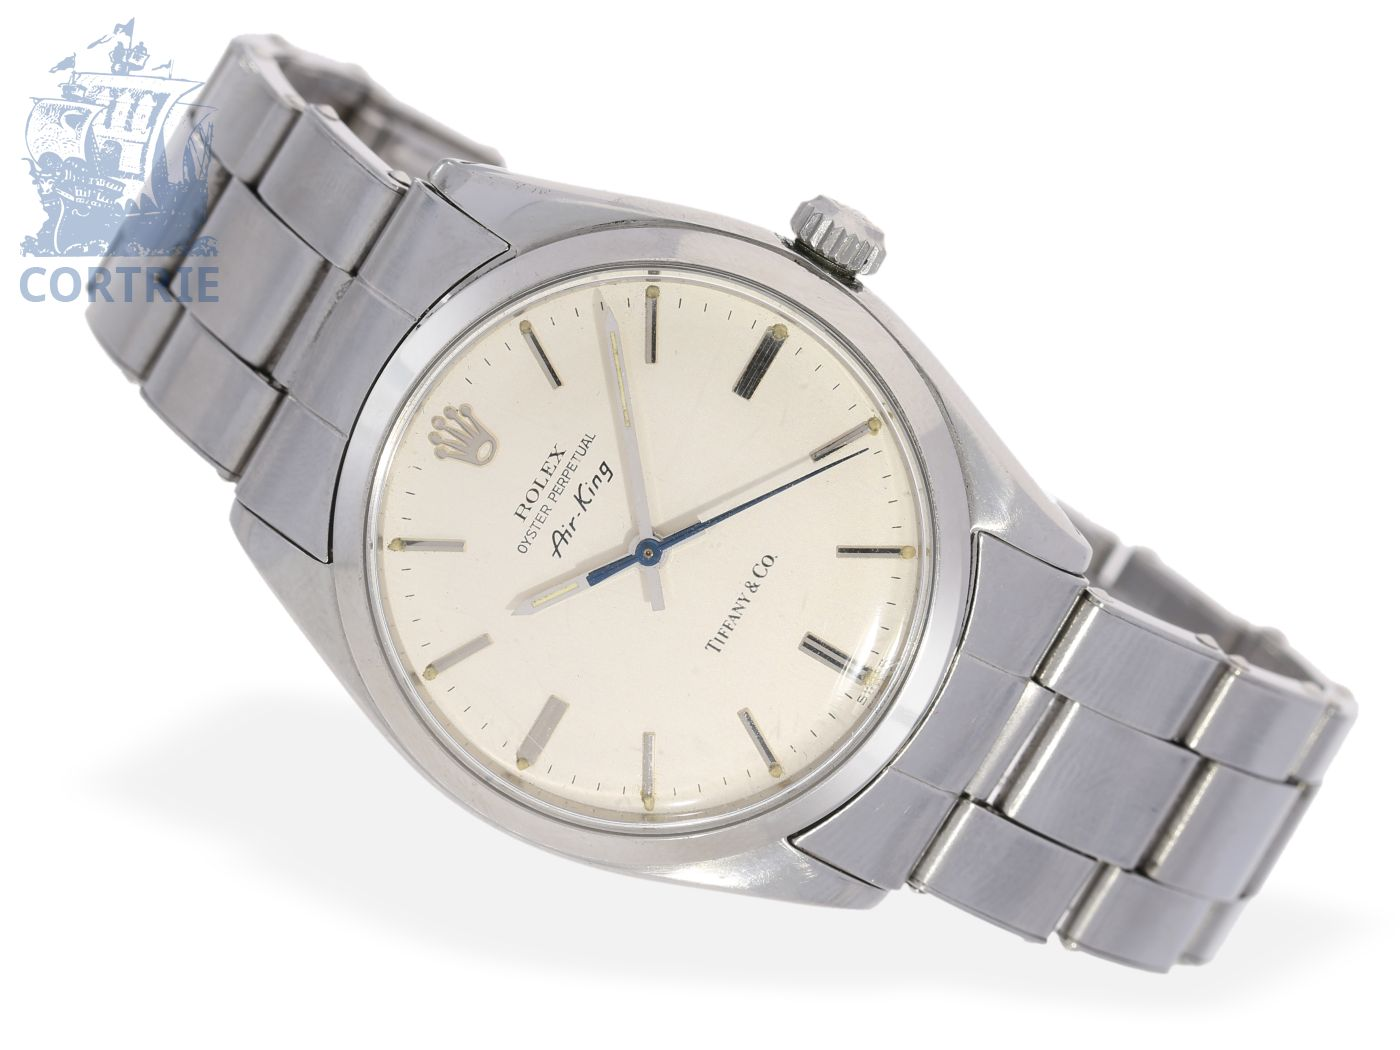 Wristwatch: rare vintage Rolex Air-King, steel, reference 5500, special model for Tiffany & Co. New York, from the 70s-